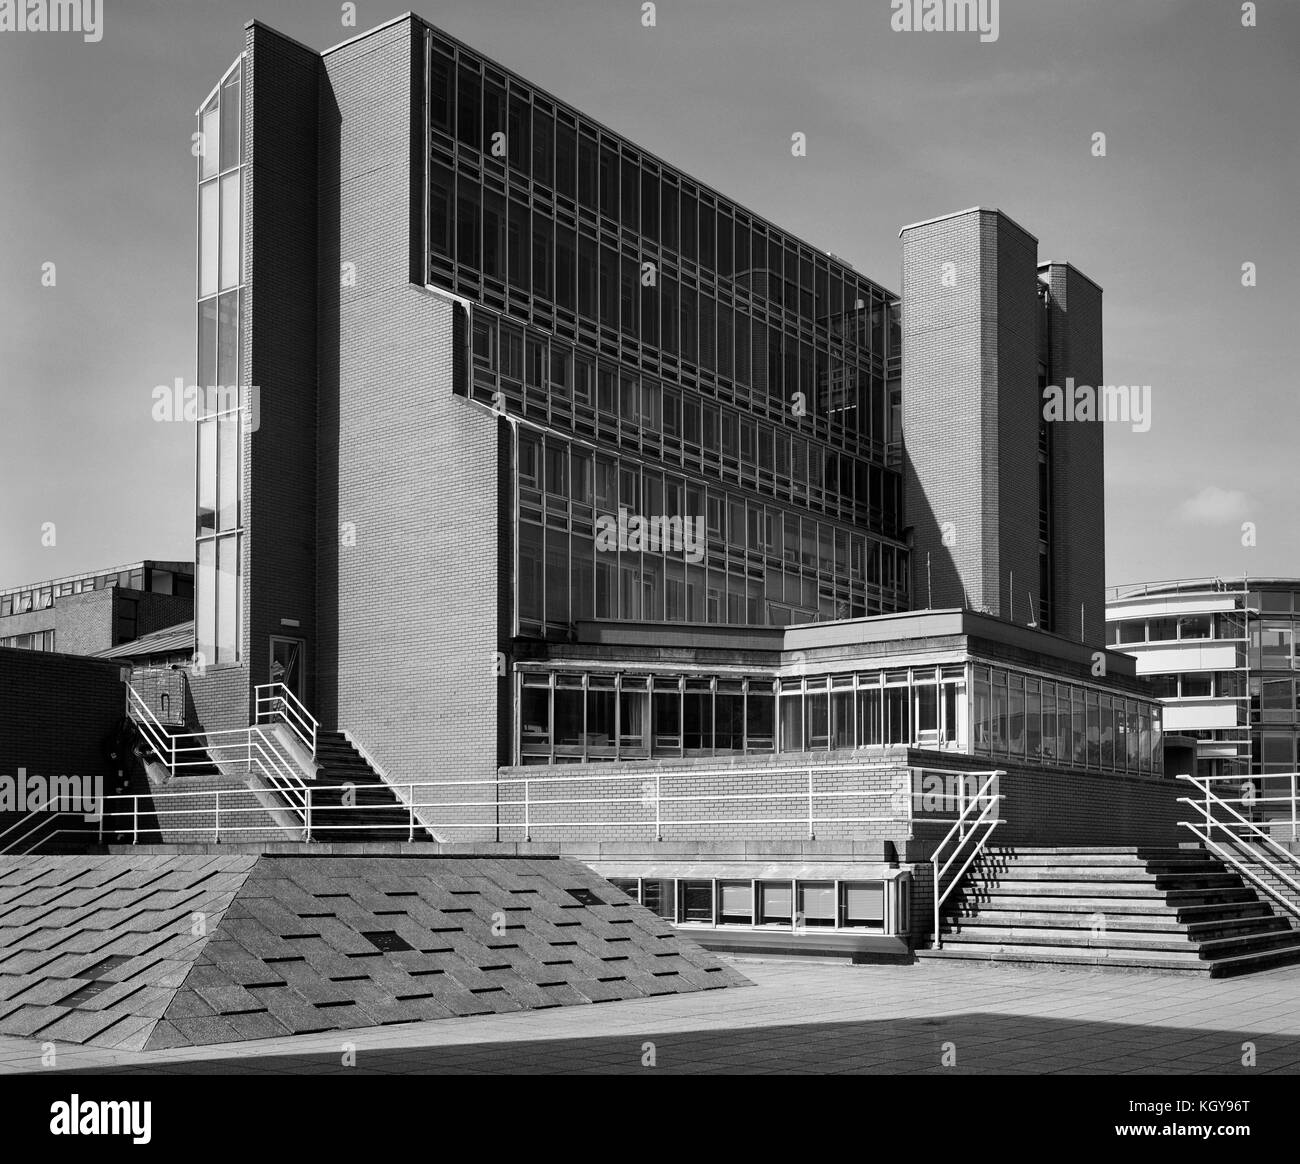 Cambridge Uuniversity History Building on the Sidgwick Site - Stock Image